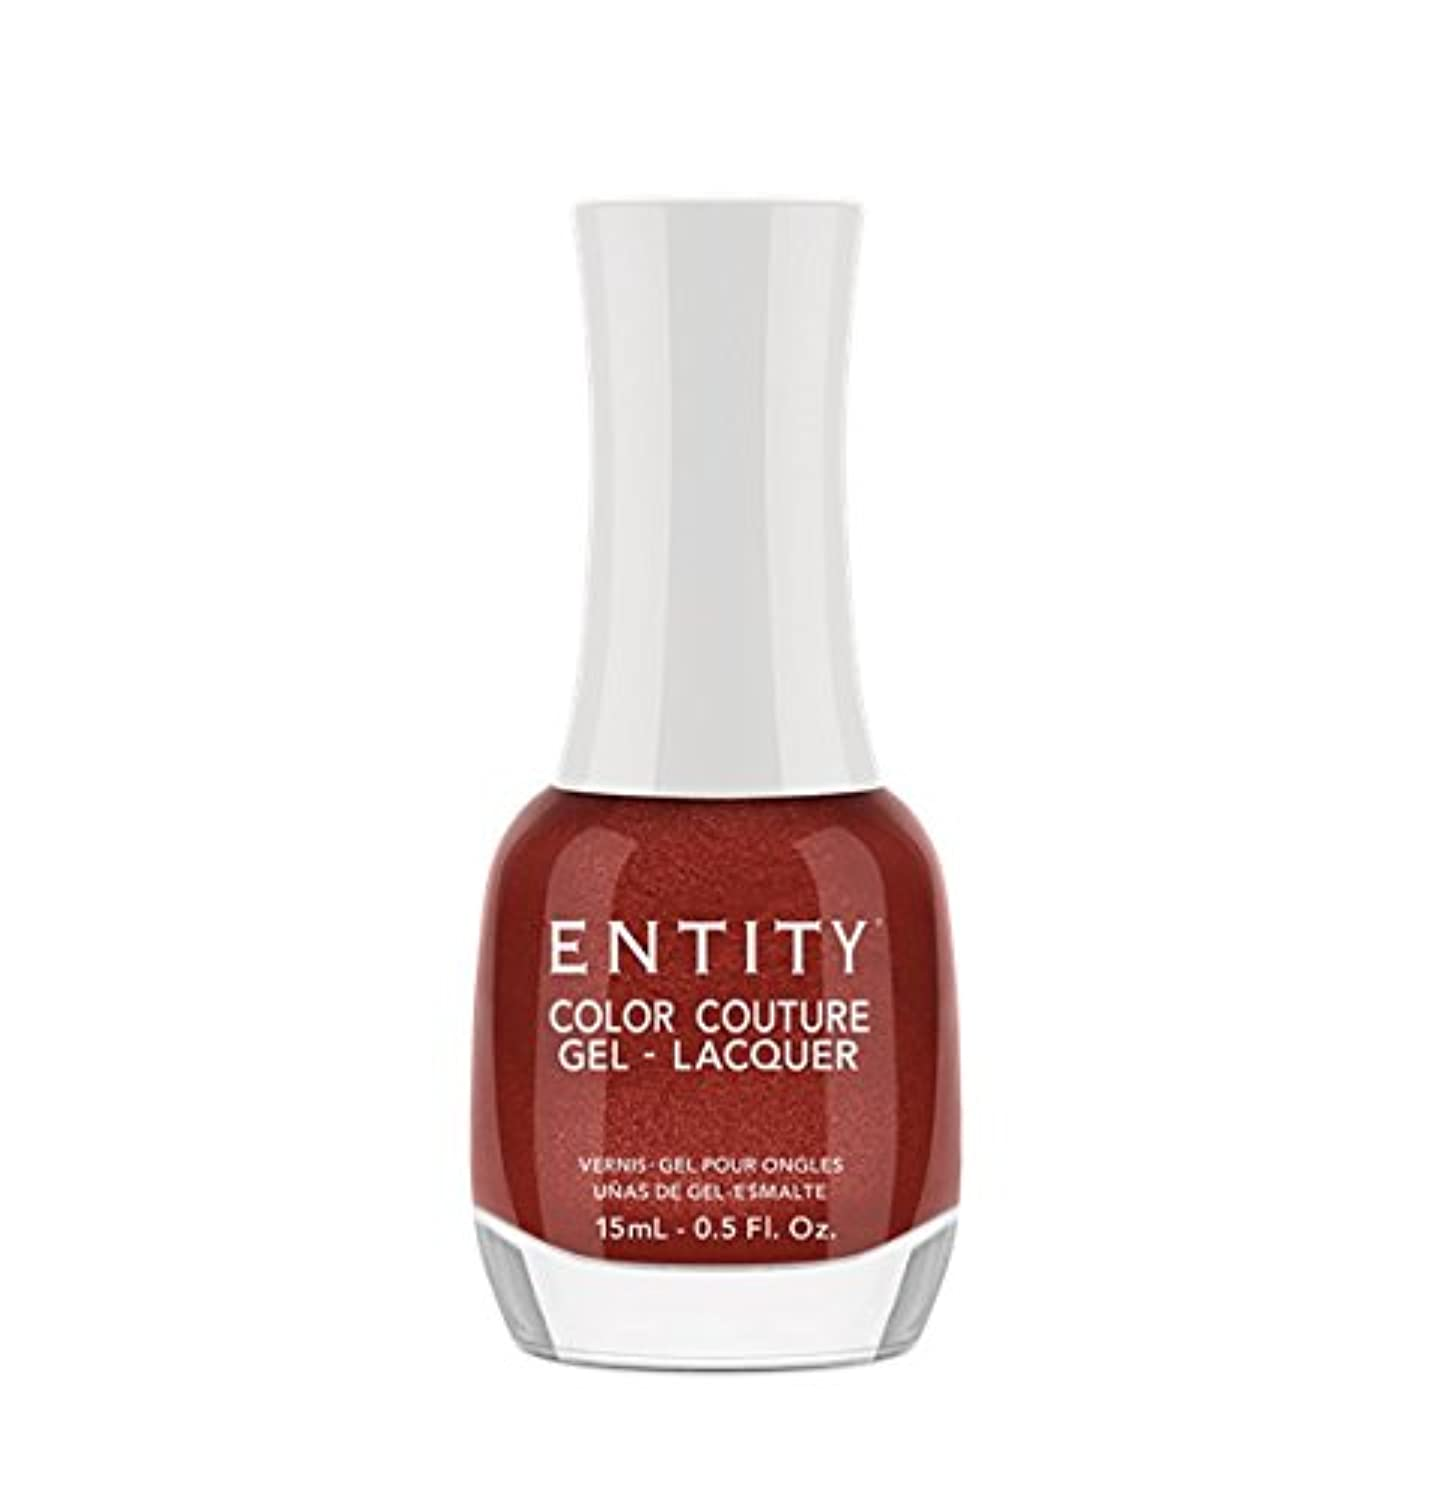 Entity Color Couture Gel-Lacquer - All Made Up - 15 ml/0.5 oz